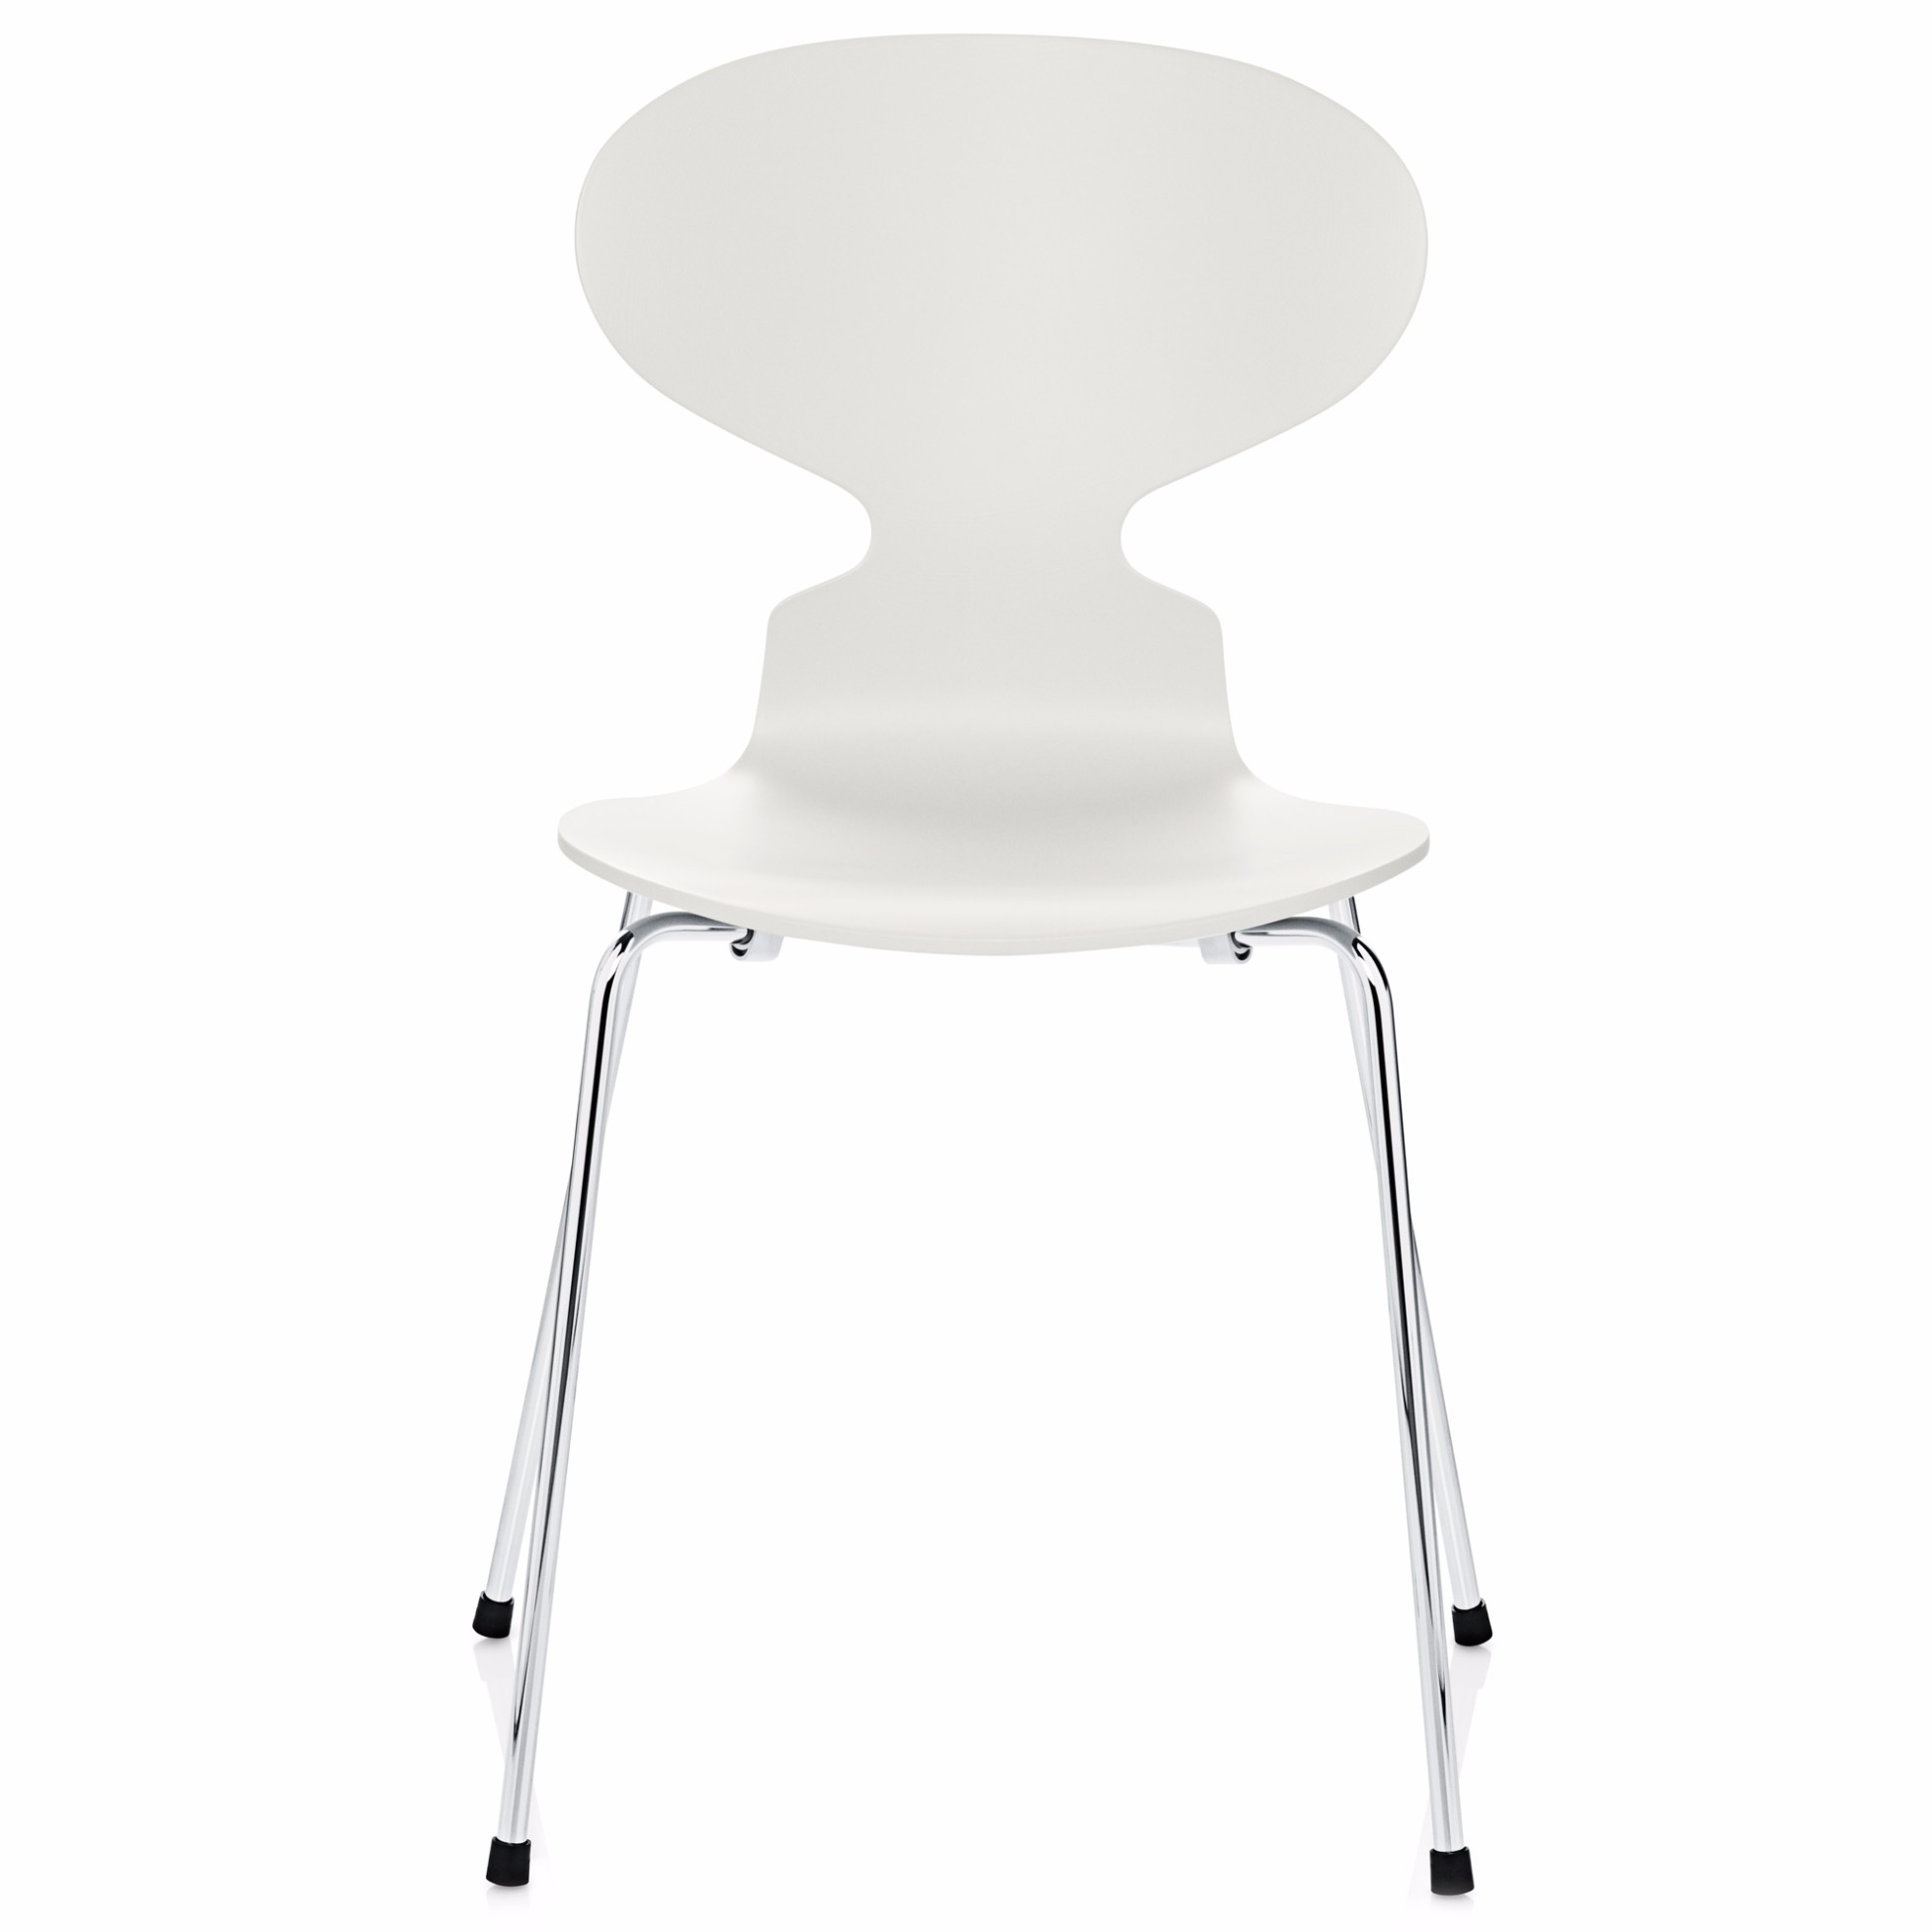 Arne Jacobsen Ameise Chair 3101 The Ant By Fritz Hansen